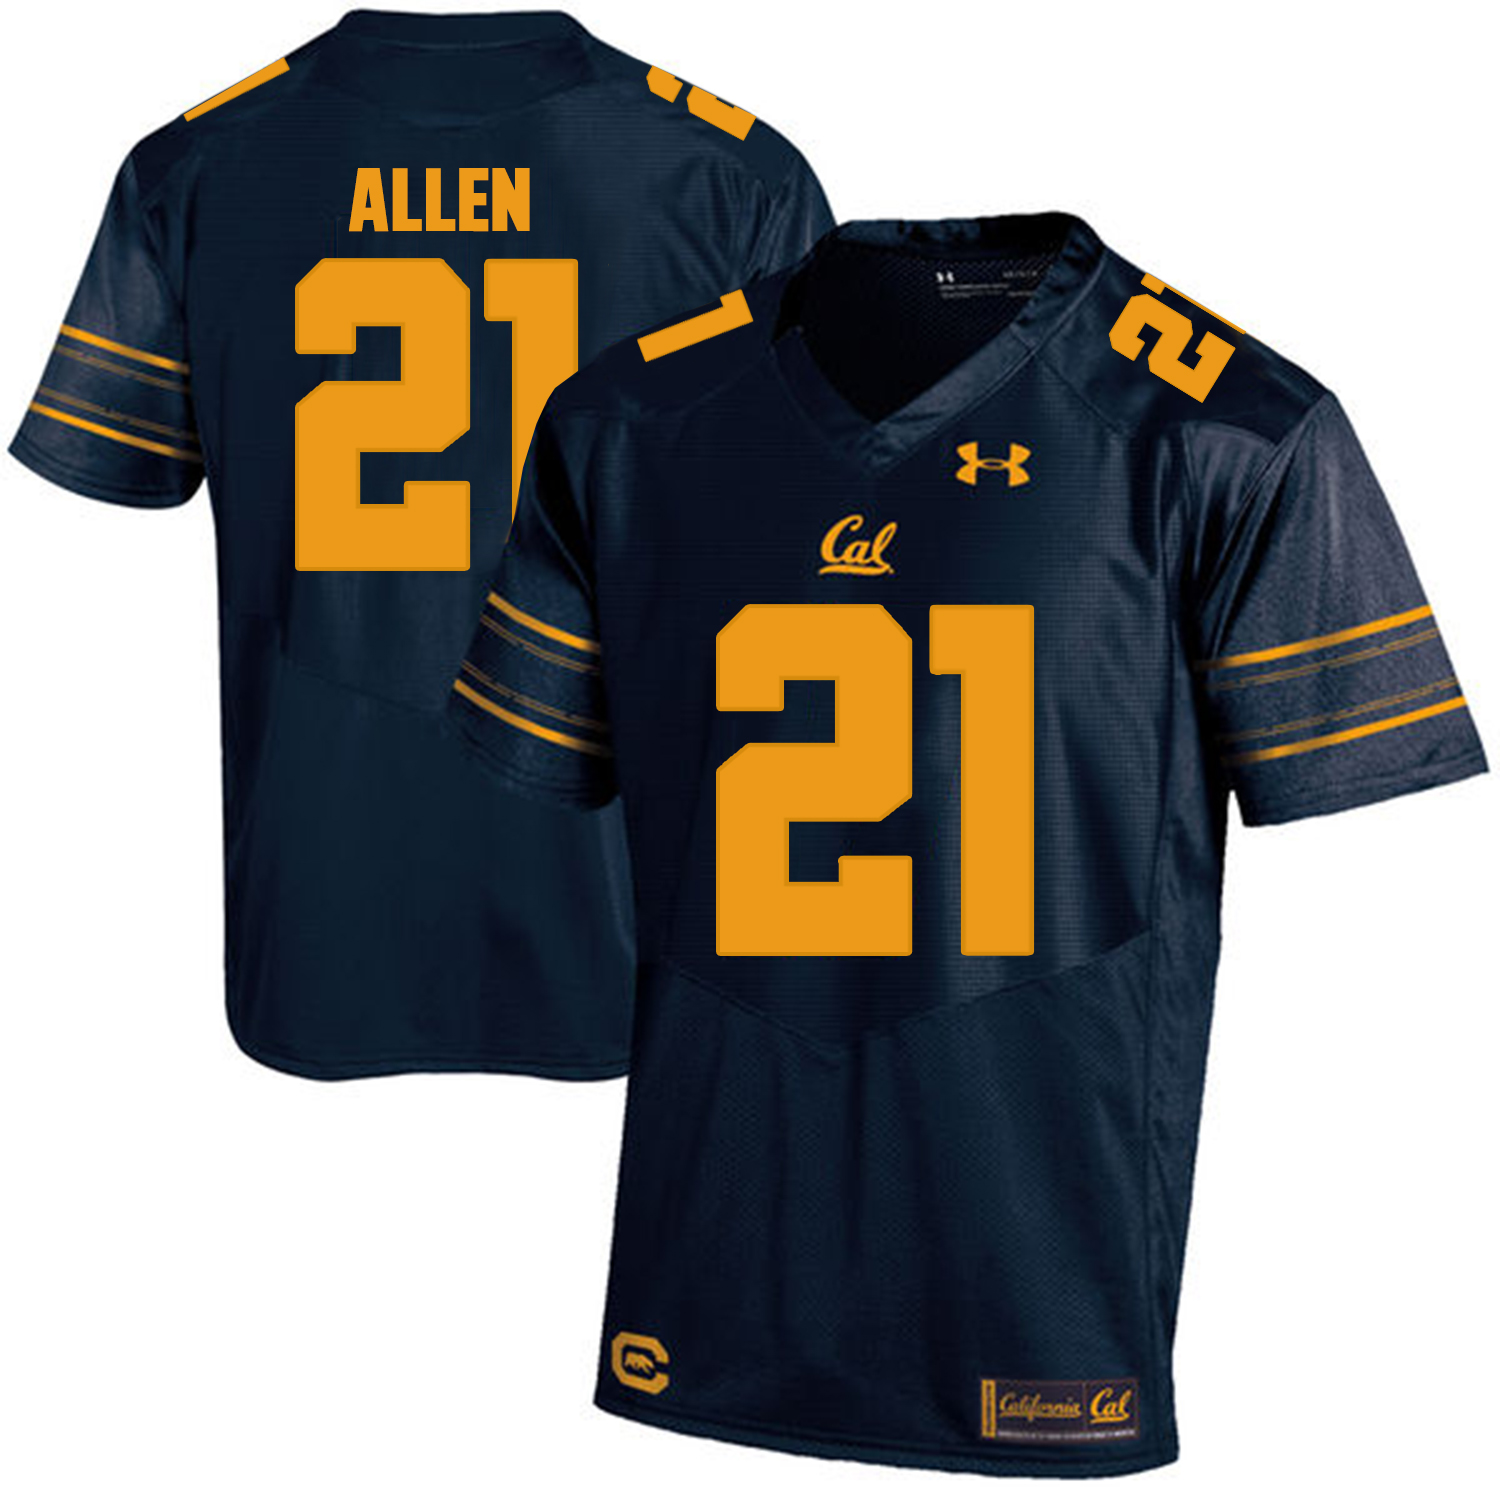 California Golden Bears 21 Keenan Allen Navy College Football Jersey